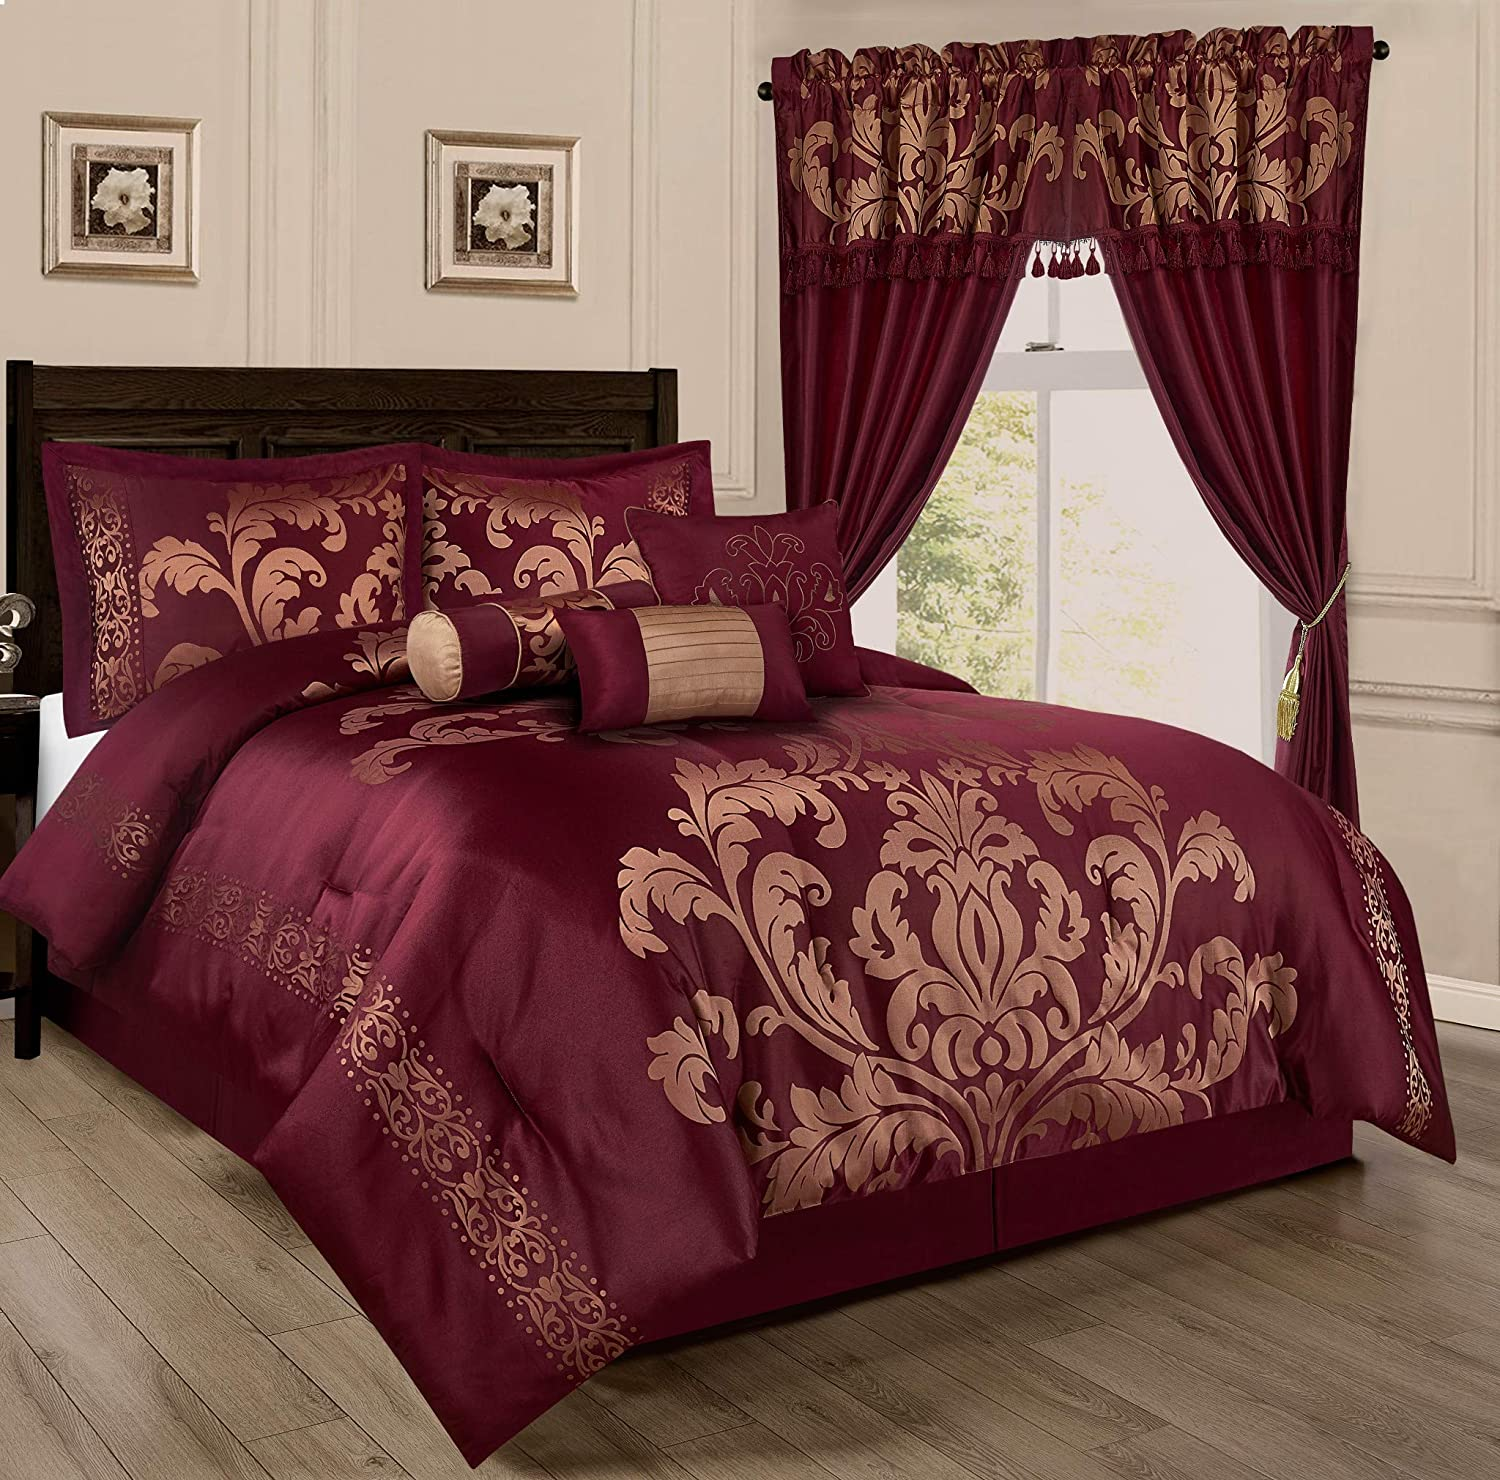 Chezmoi Collection 7-Piece Jacquard Floral Comforter Set (Queen, Maroon)